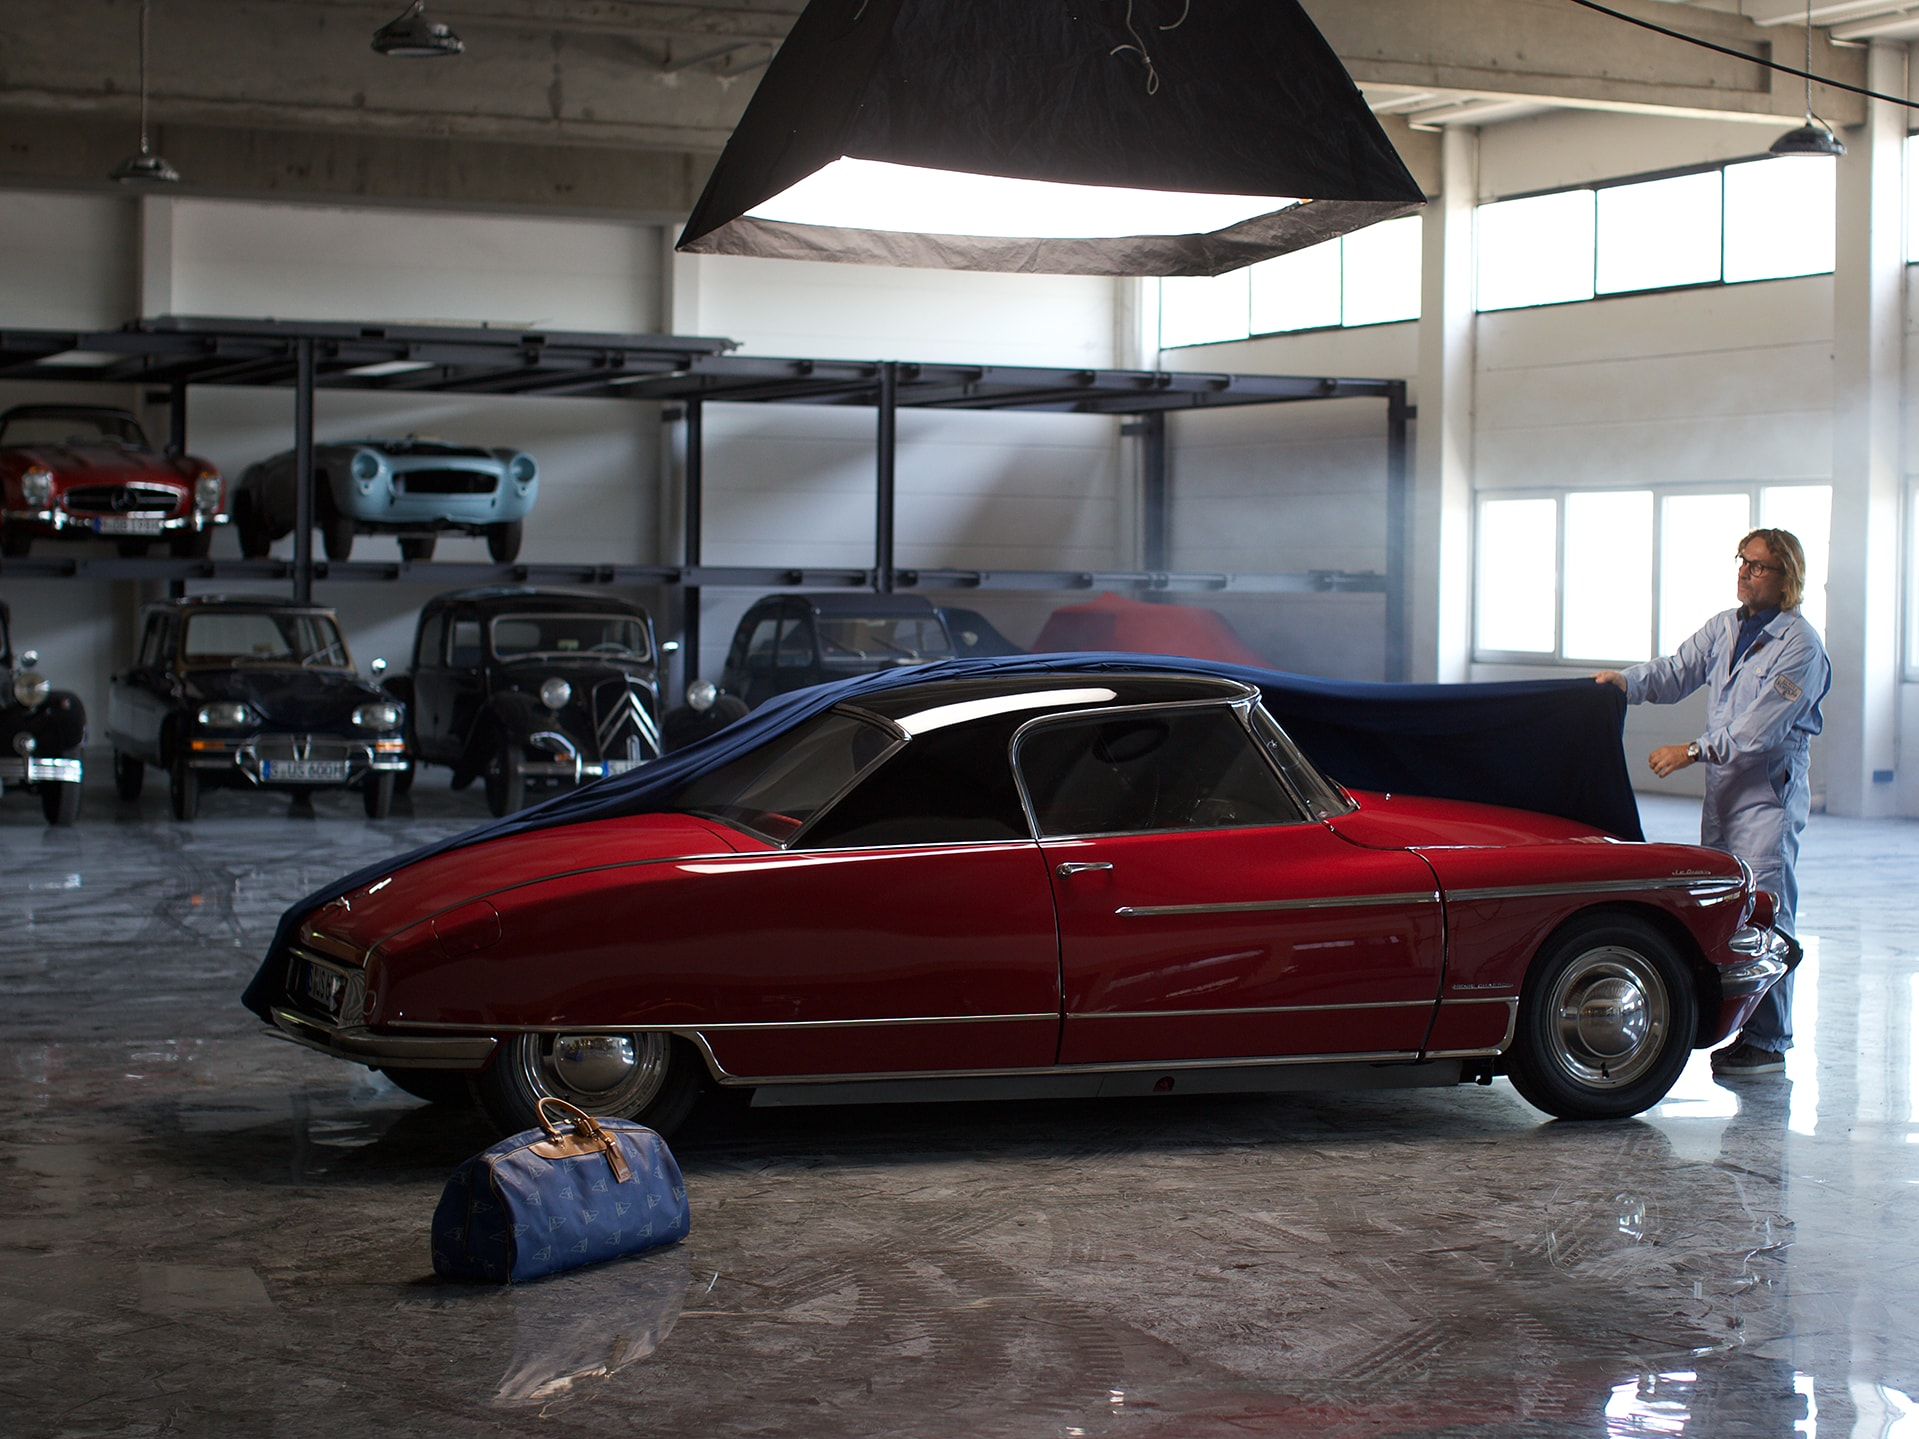 Car collector Hans Ulrich Scholpp during the shoot